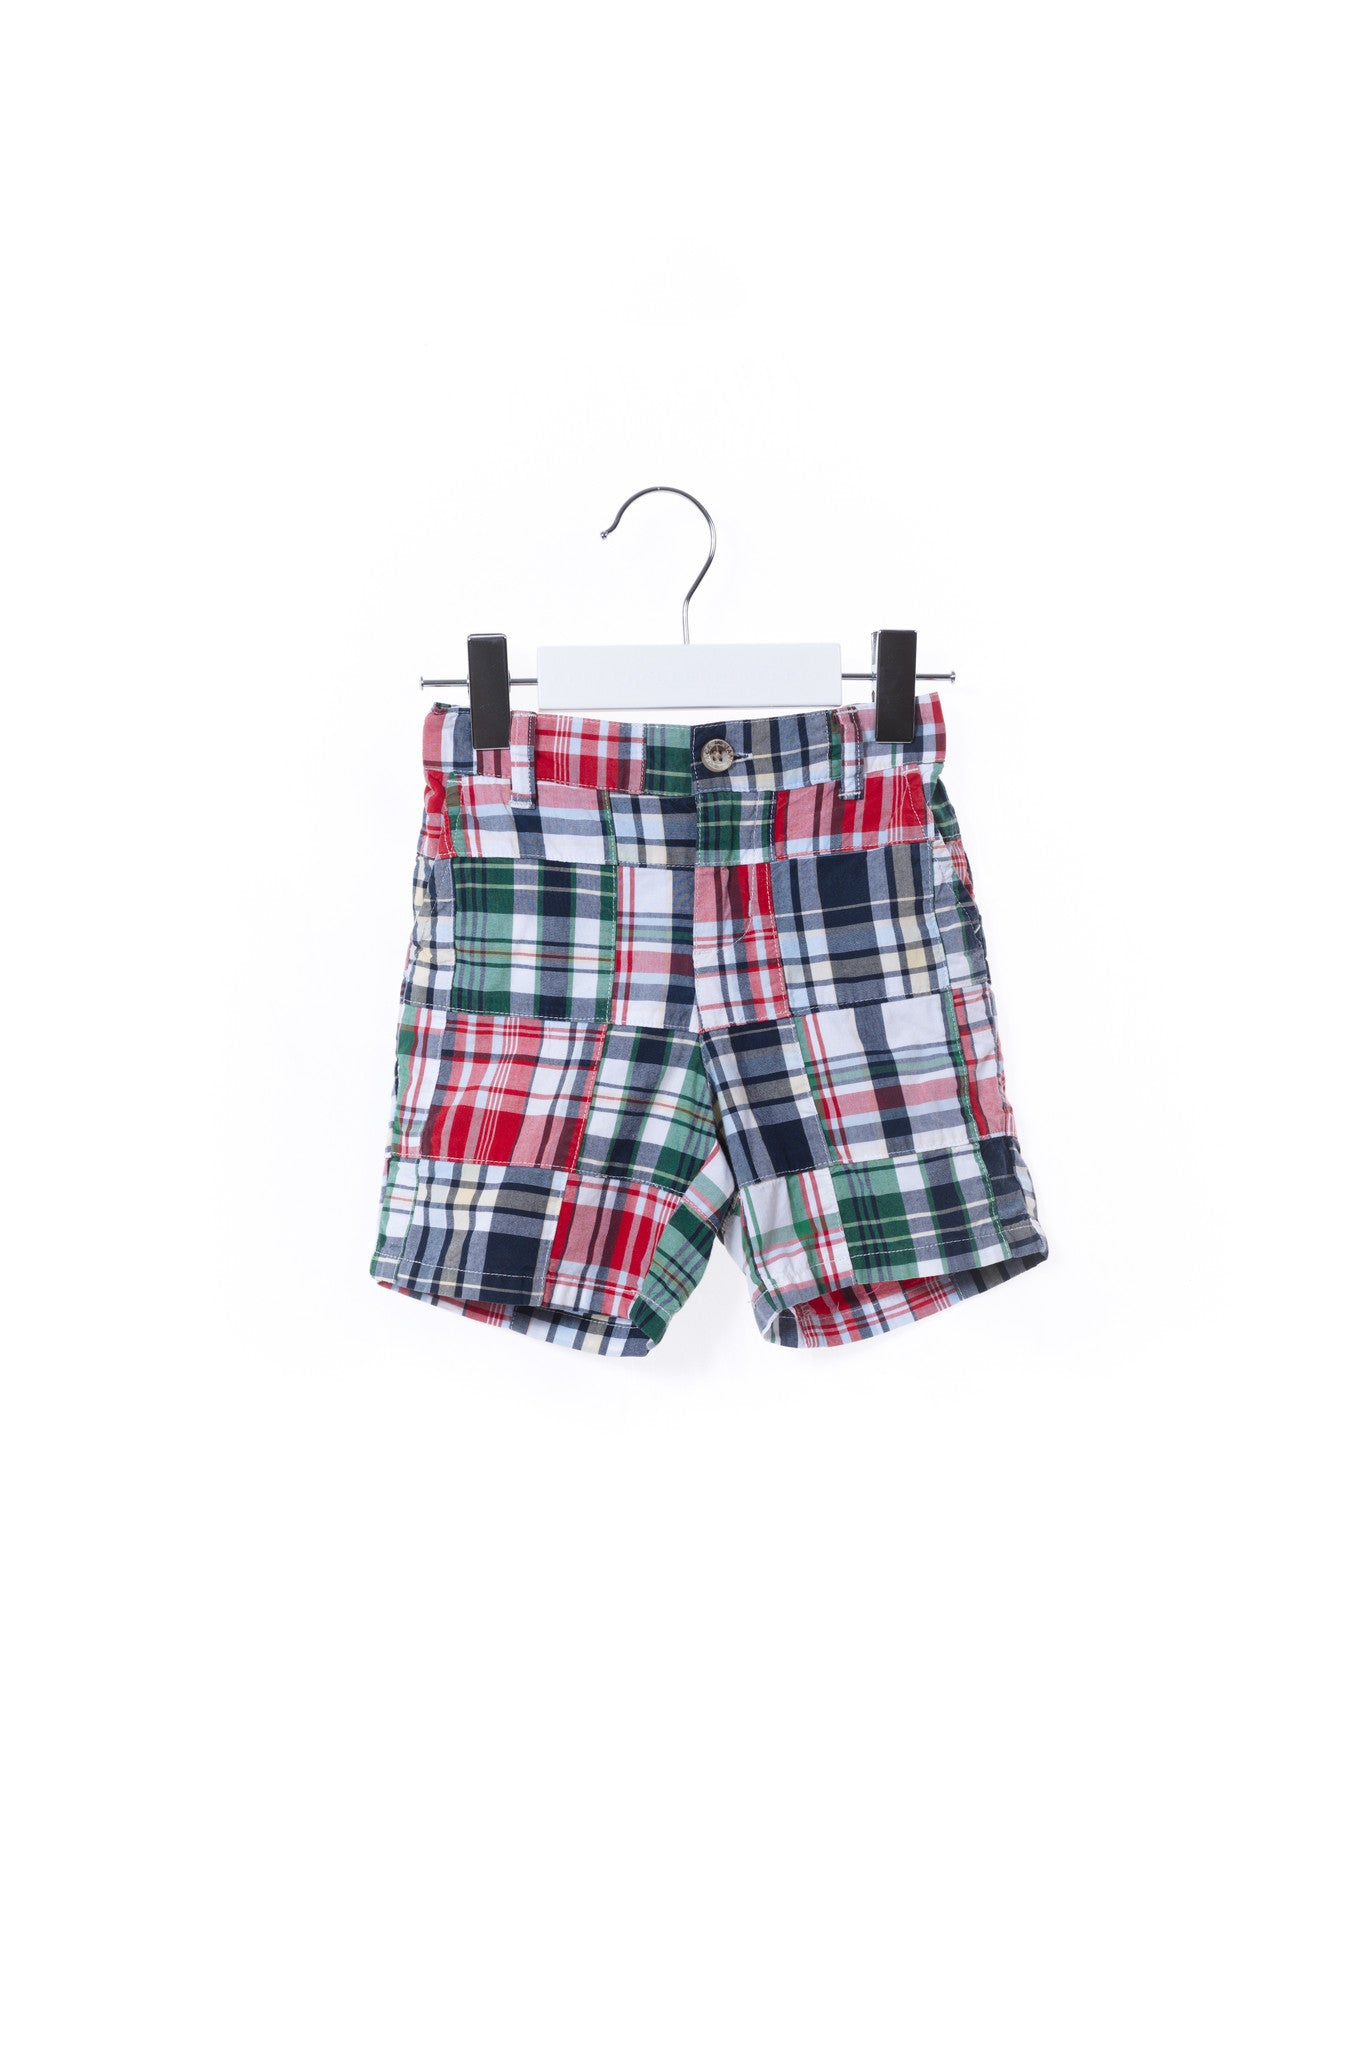 Shorts 6-12M, Janie & Jack at Retykle - Online Baby & Kids Clothing Up to 90% Off